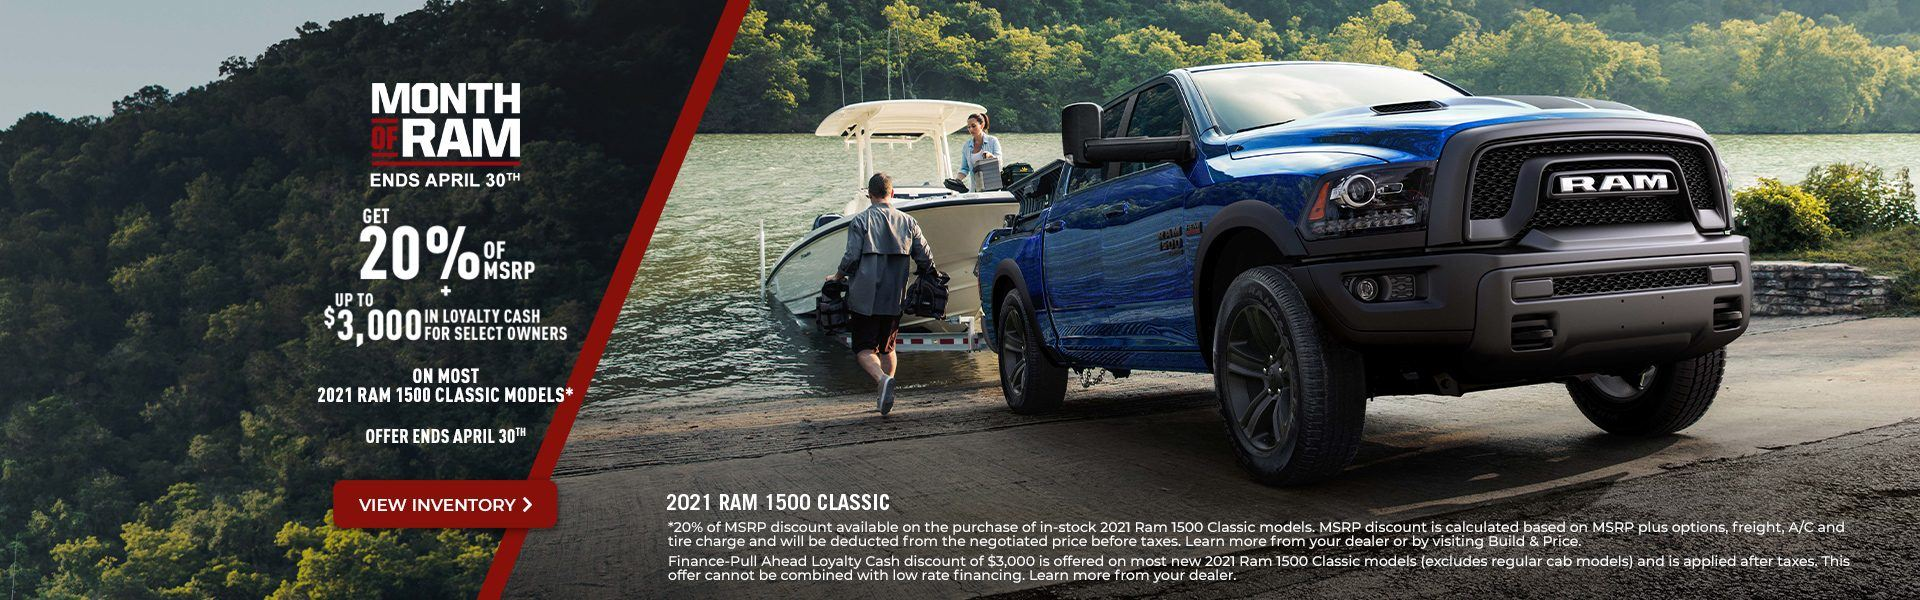 2021 RAM 1500 Classic Promotional Banner